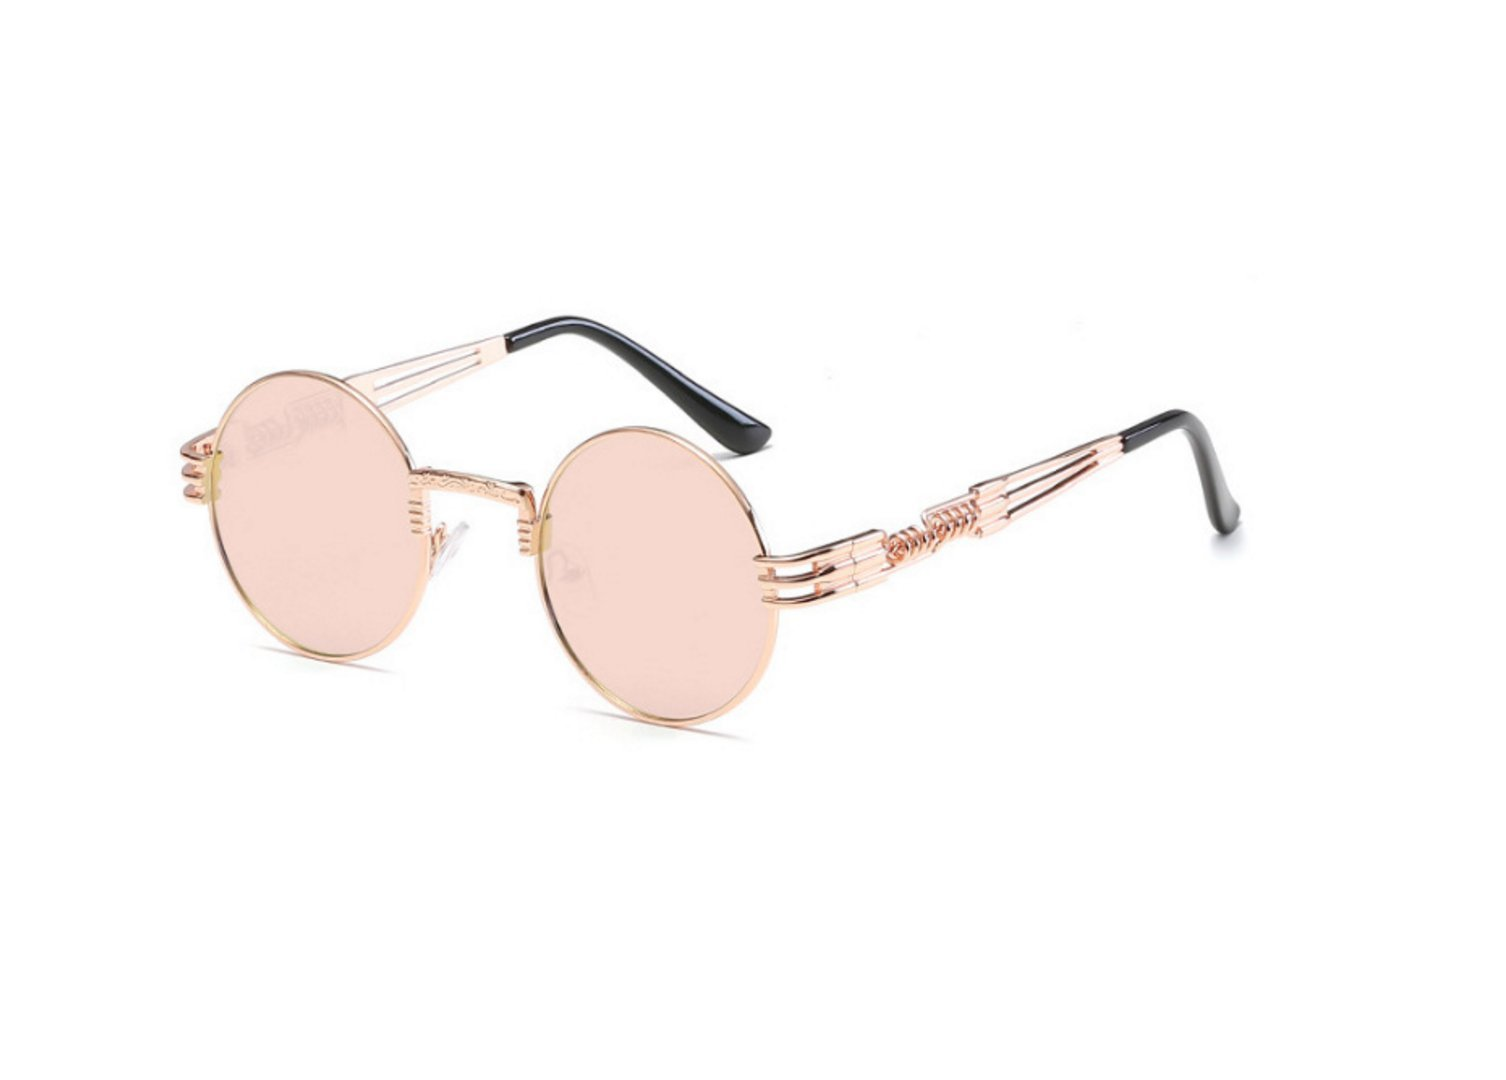 HDWY Trends Outdoor Round Frame Sunglasses Metal Sunglasses Unisex Sunglasses (Color : 4)